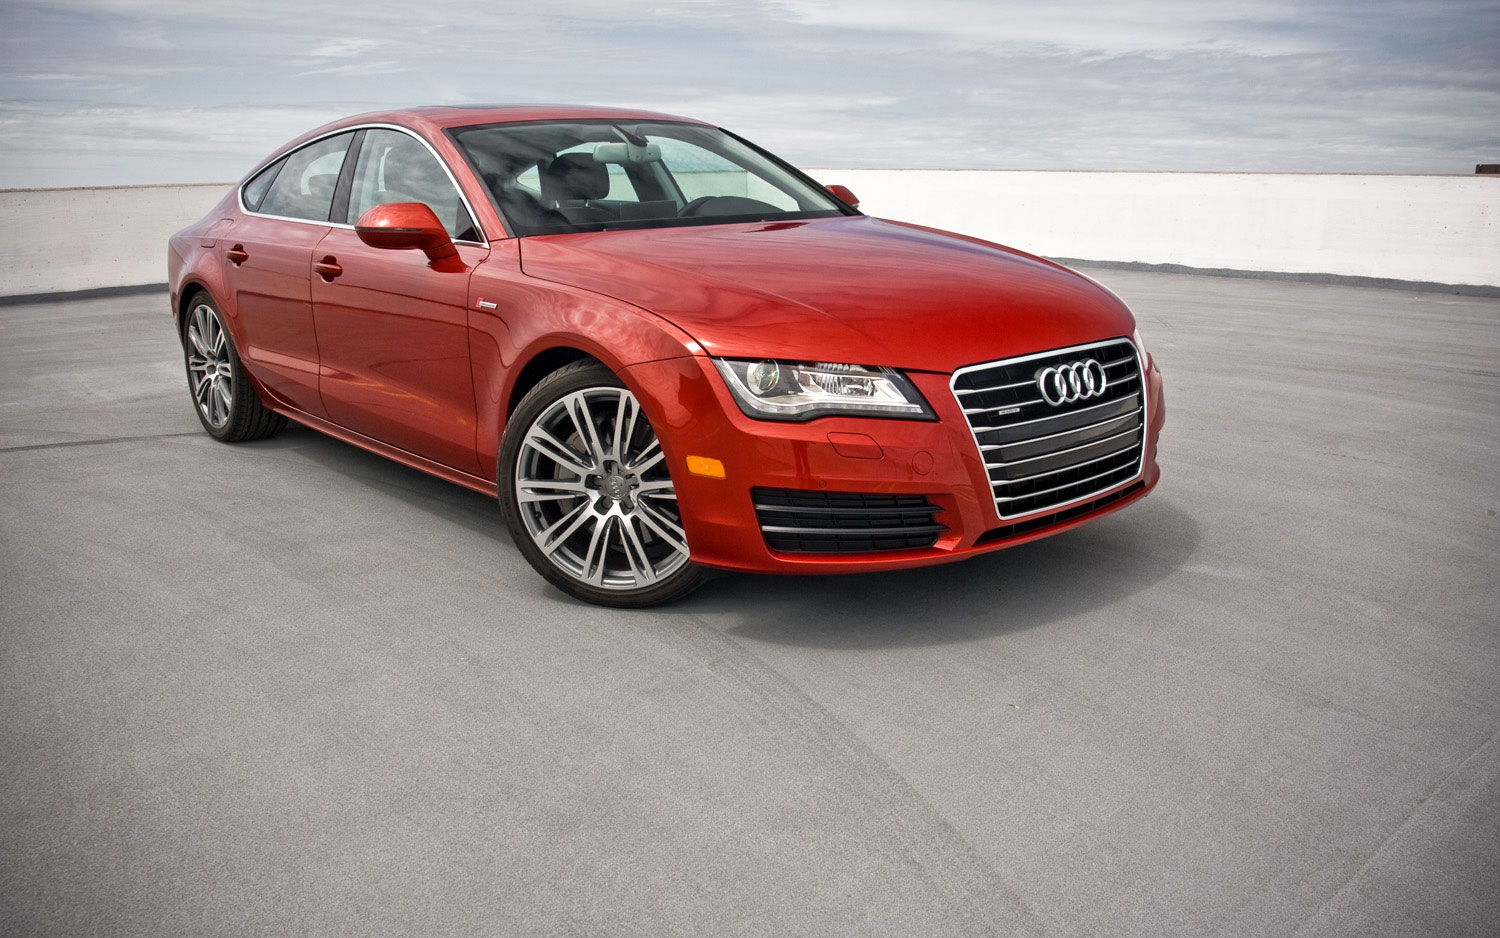 2012 Audi A7 Premium Plus Front Right Side View2